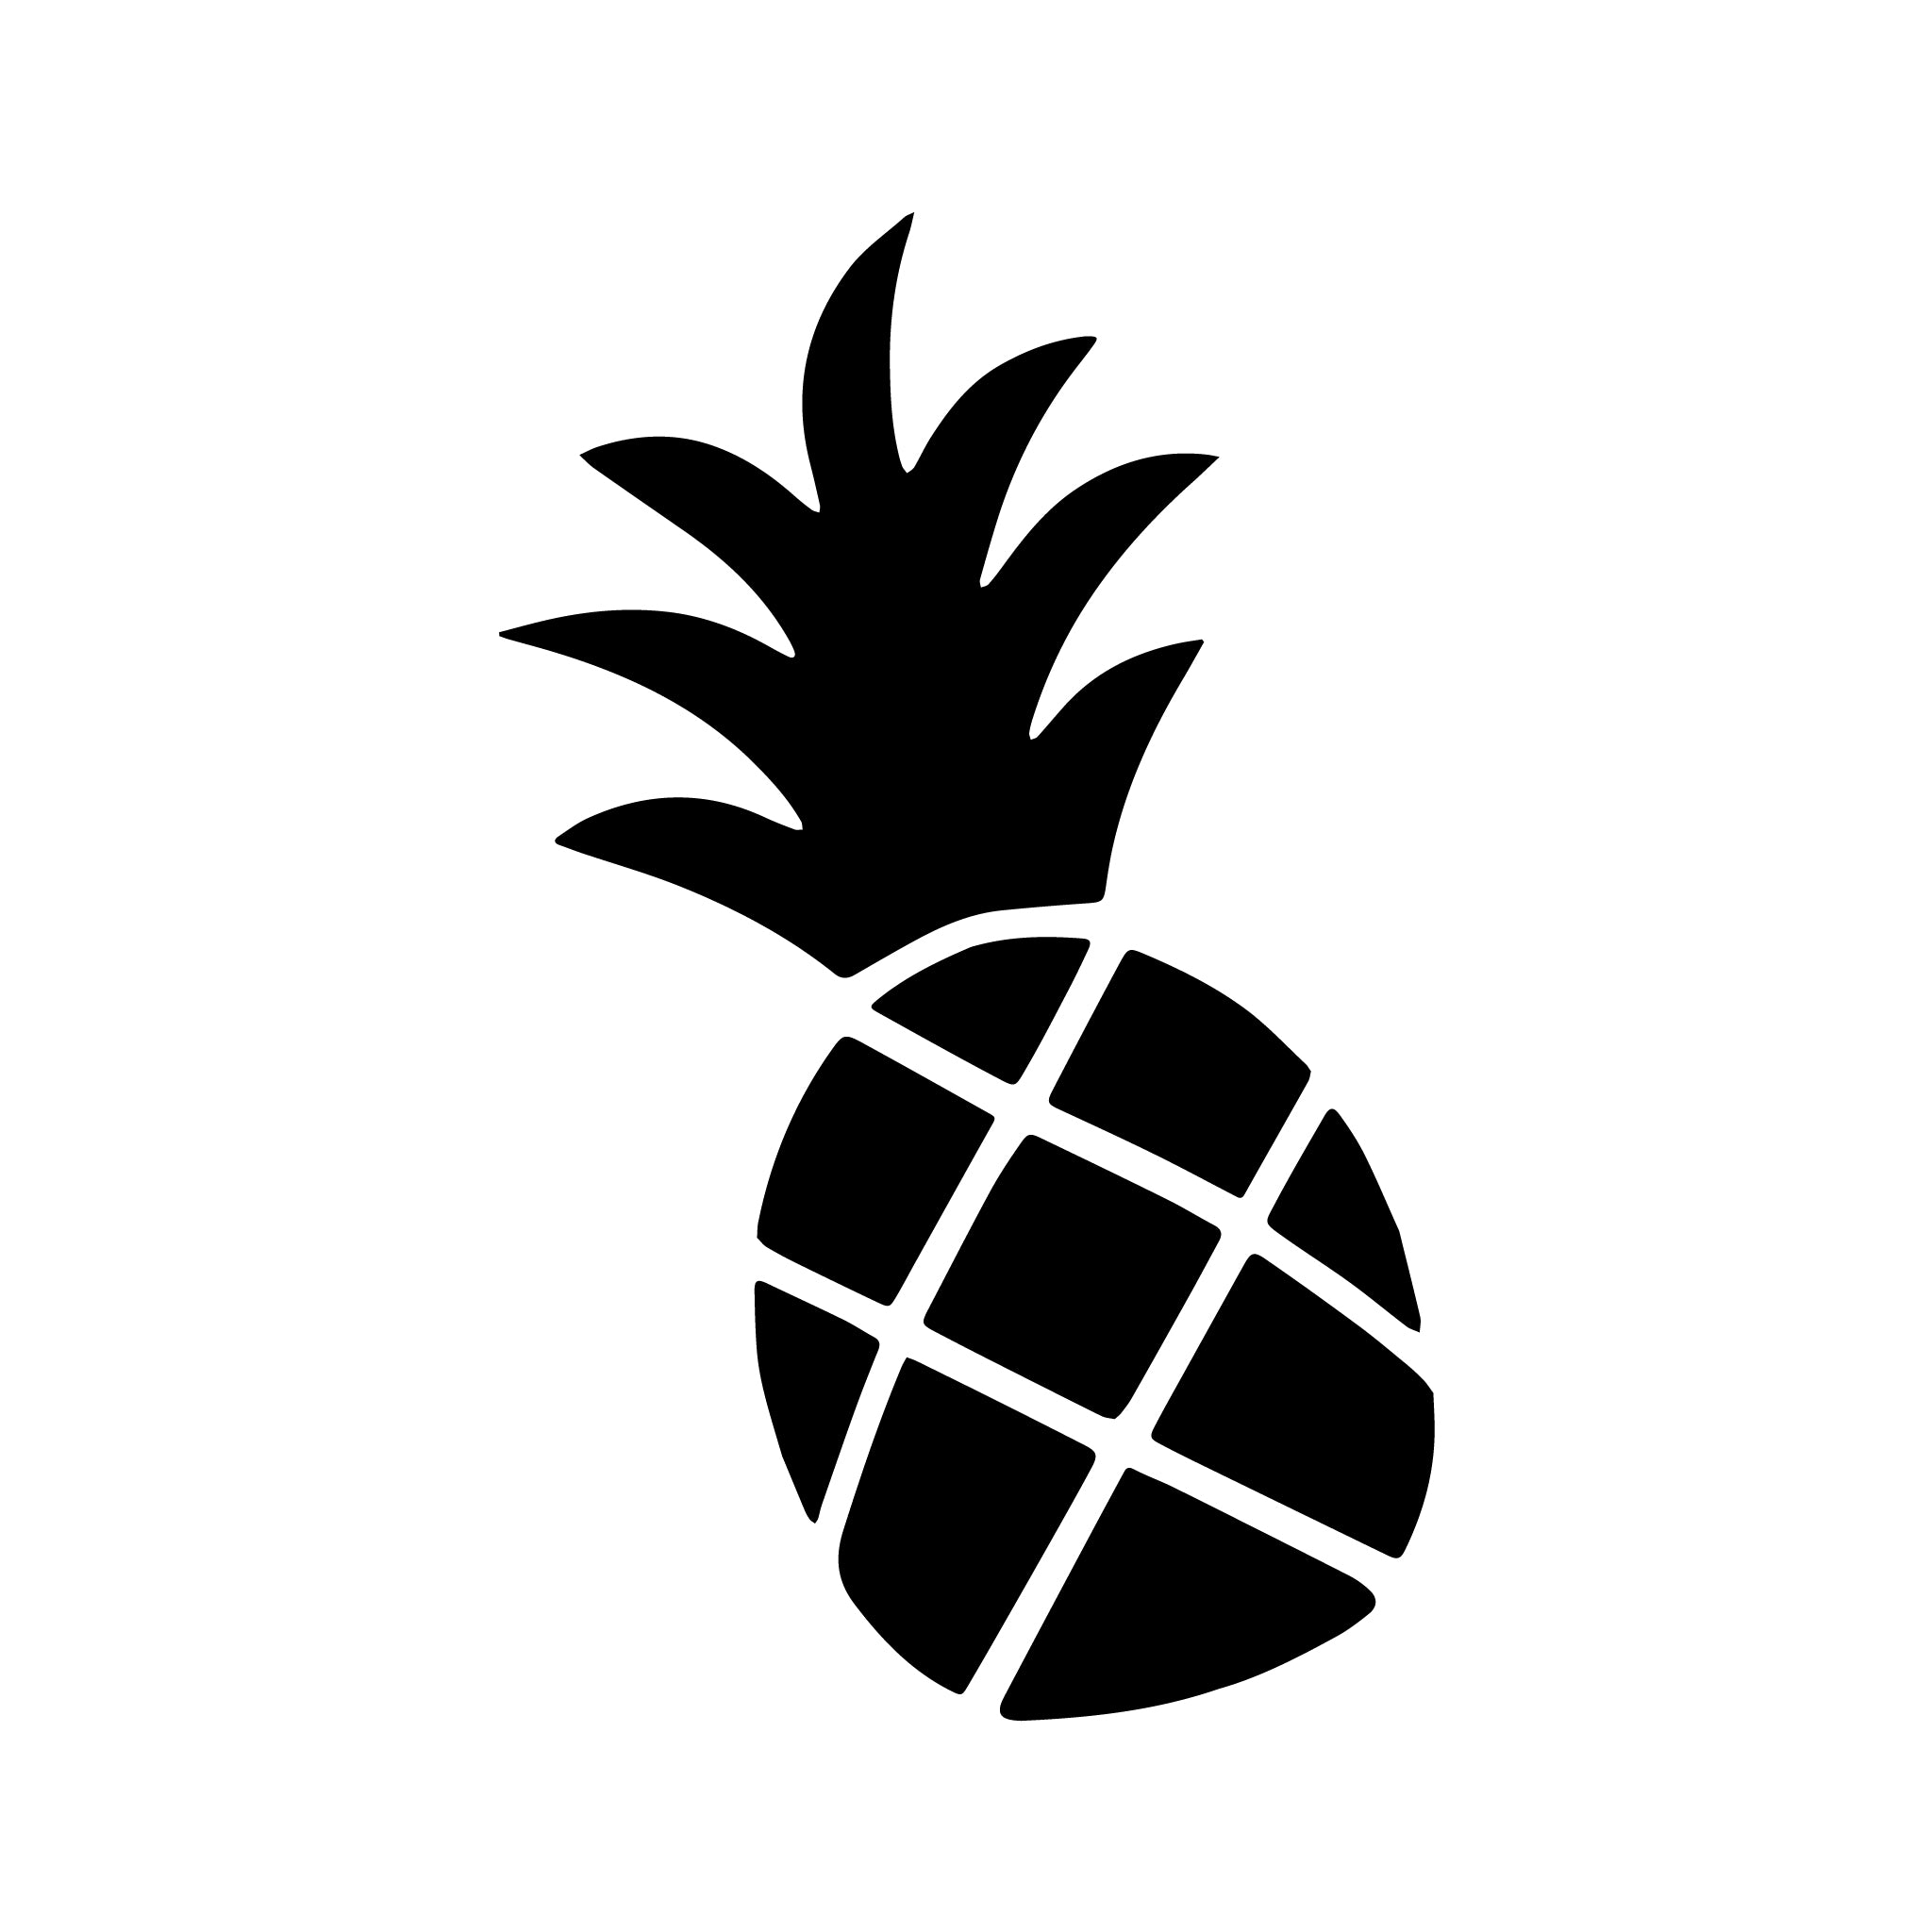 Pineapple Vinyl Decals | Jimmy Oakes for Clipart Pineapple Black And White  177nar